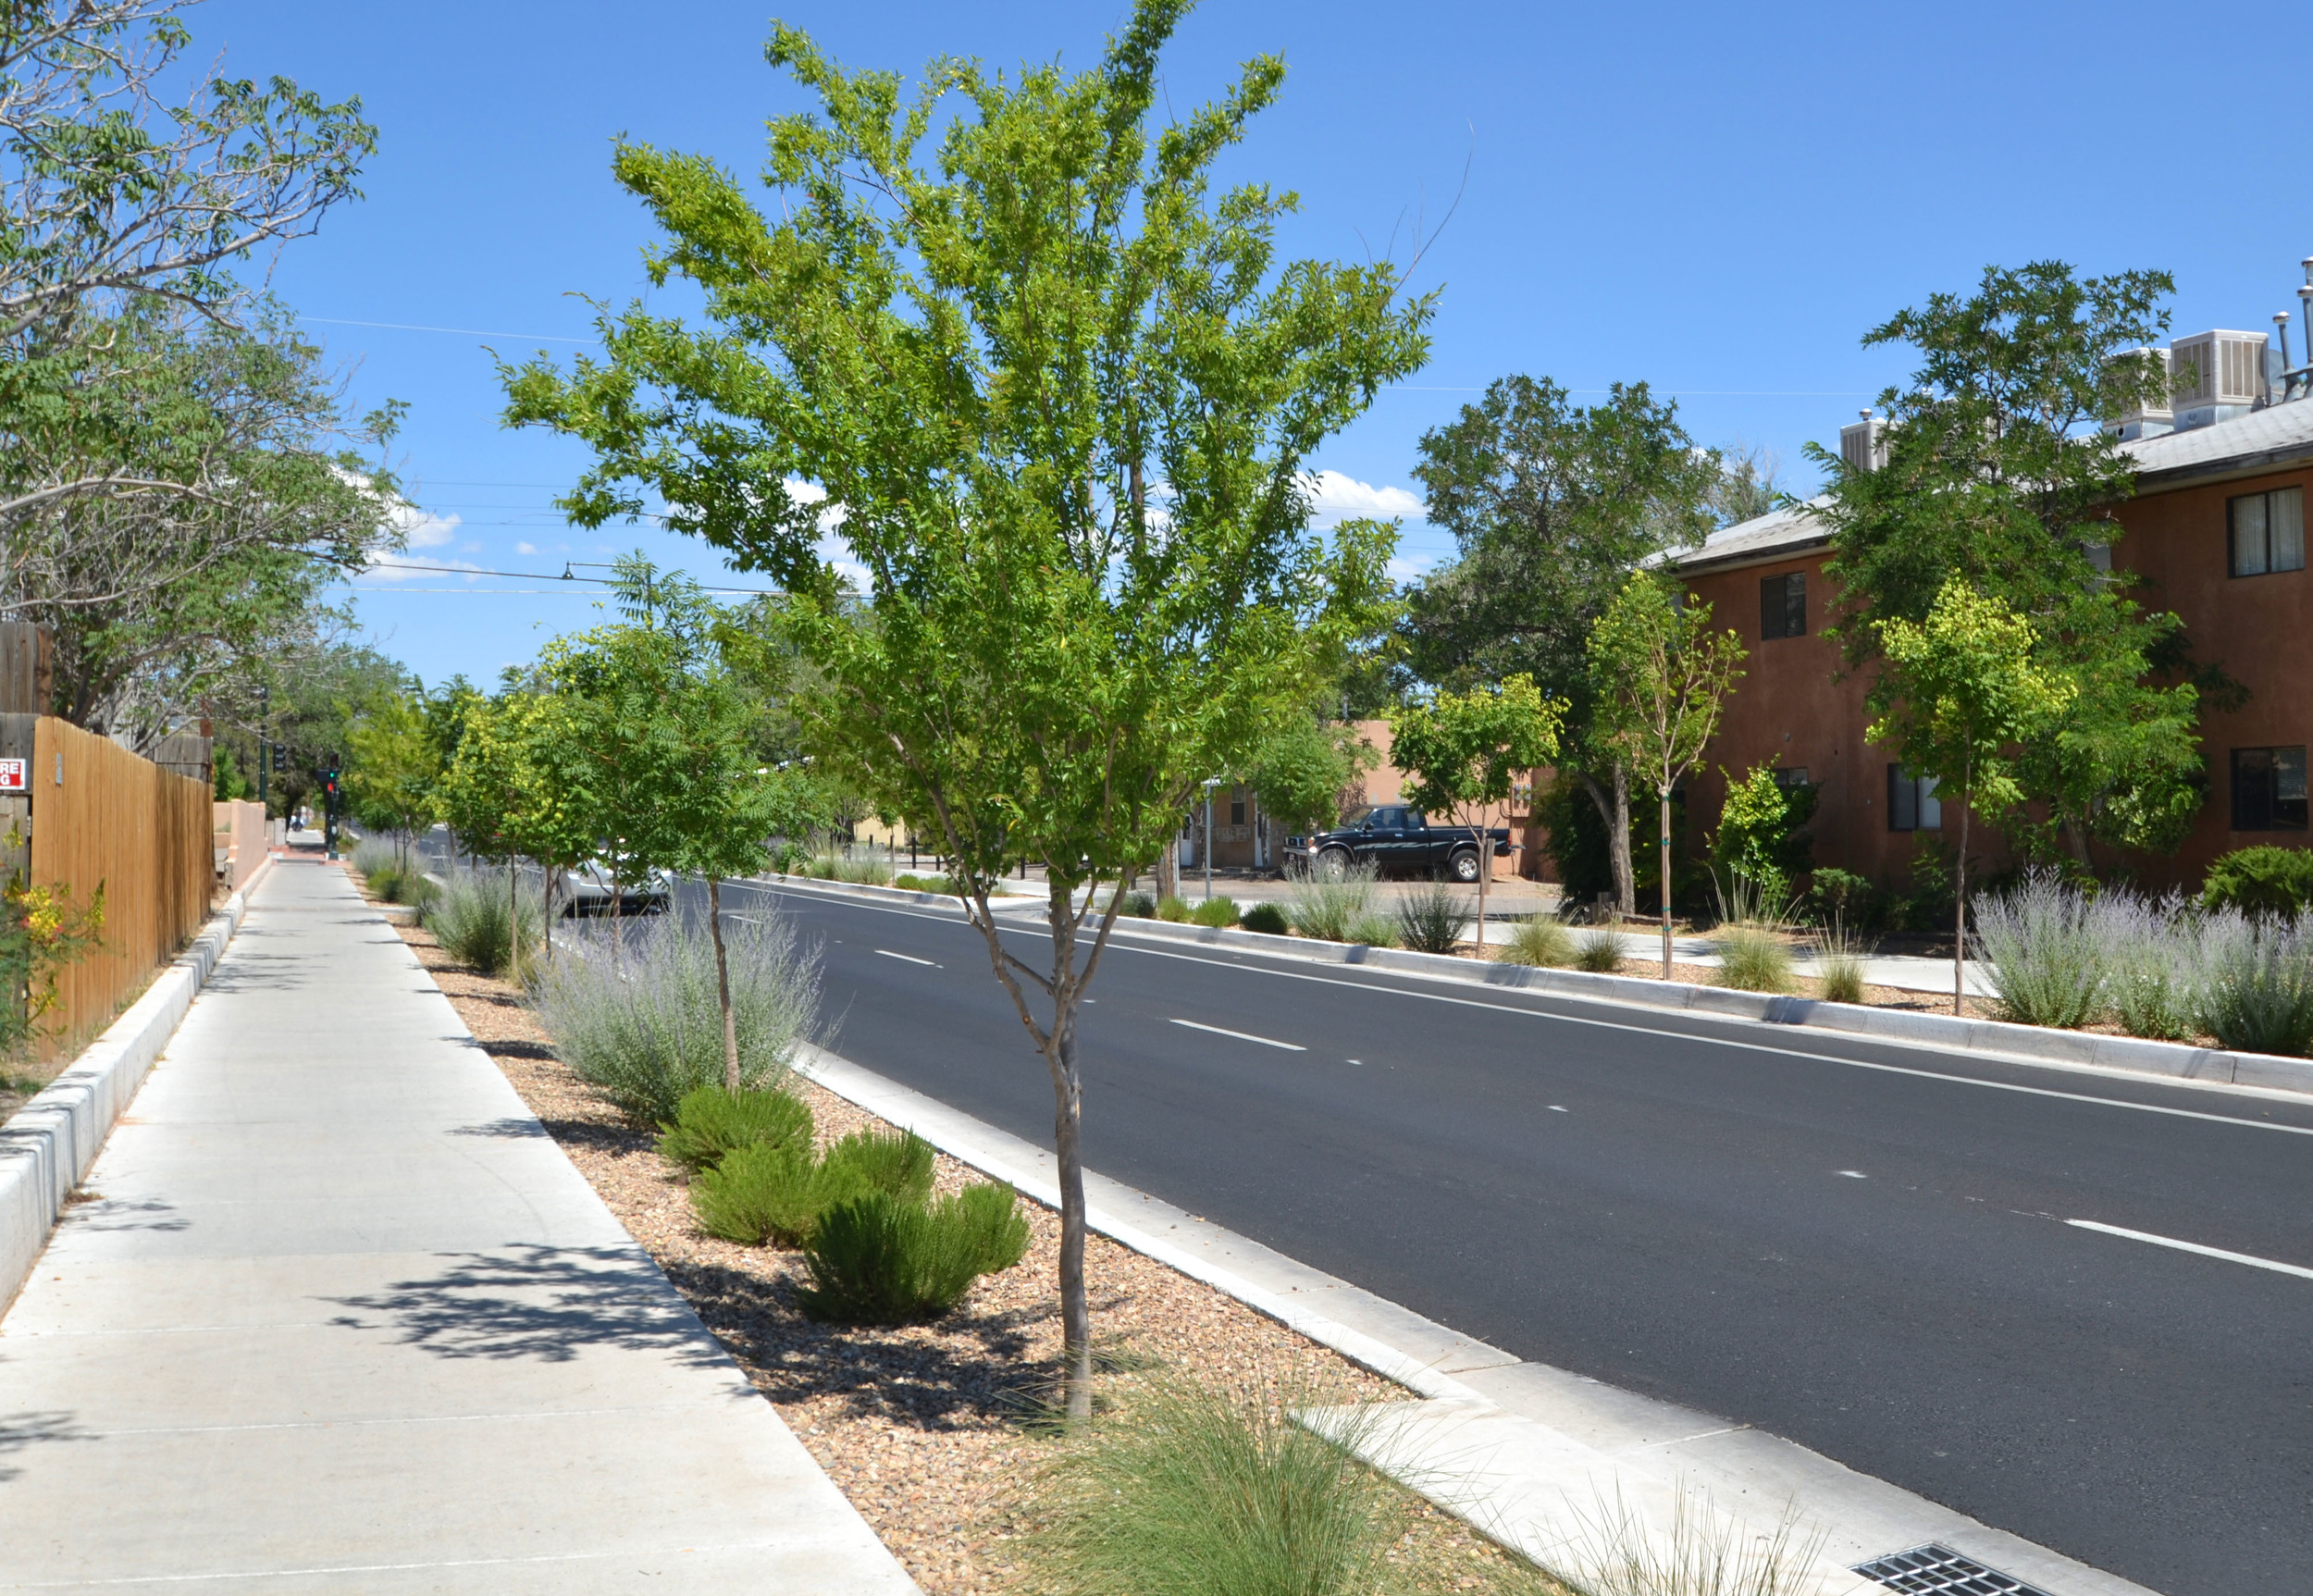 New trees planted to provide shade and traffic calming